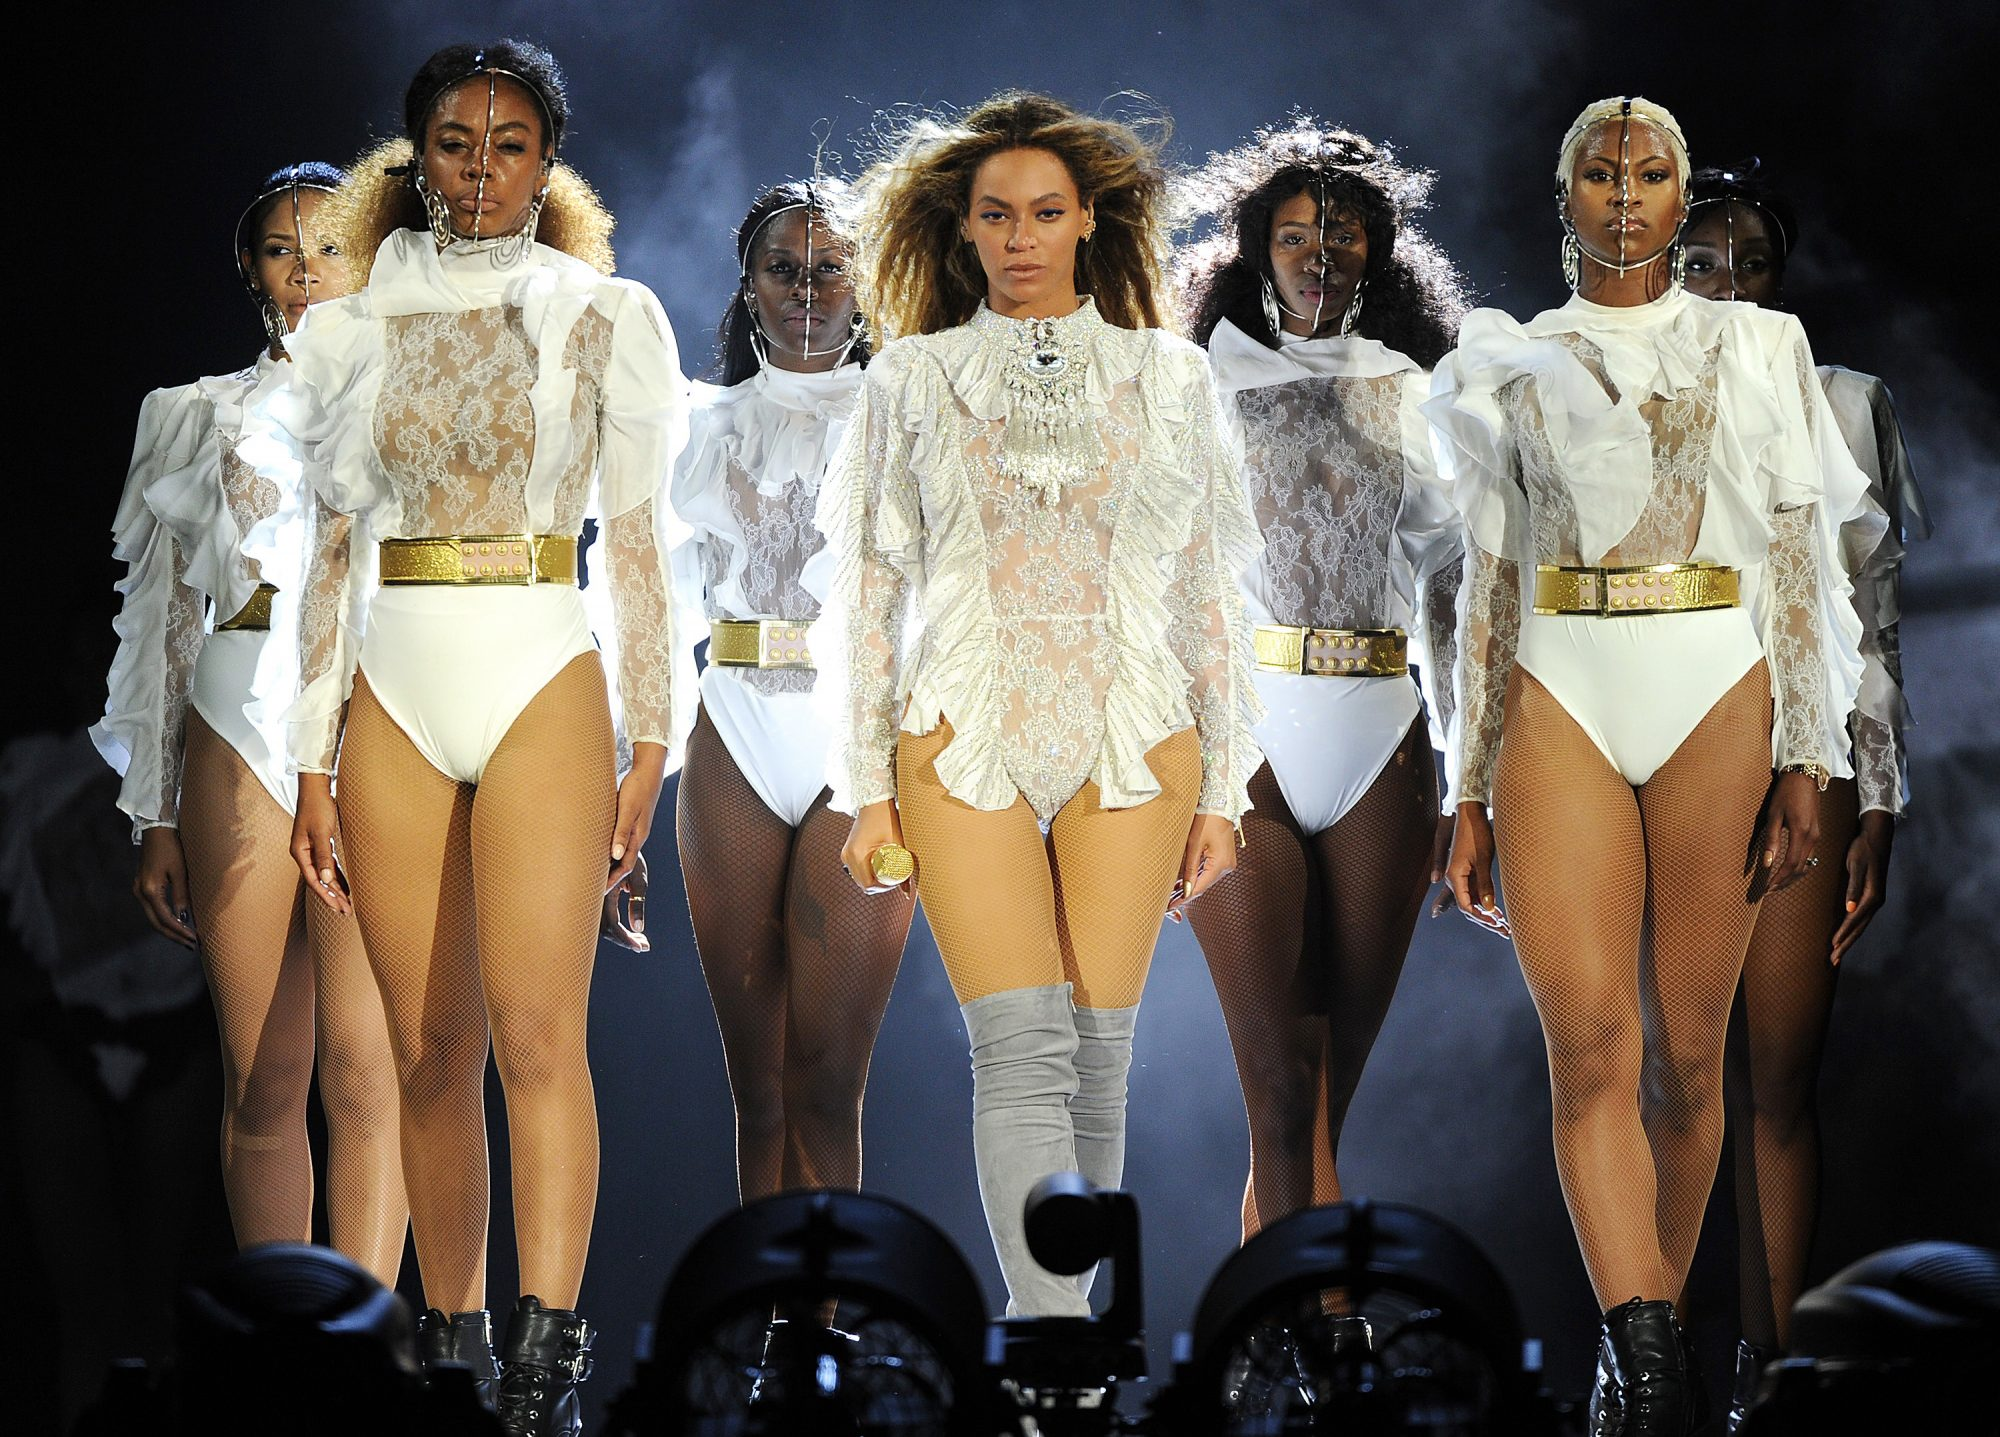 The Sexiest Outfits from the First Night of Beyoncé's Formation Tour